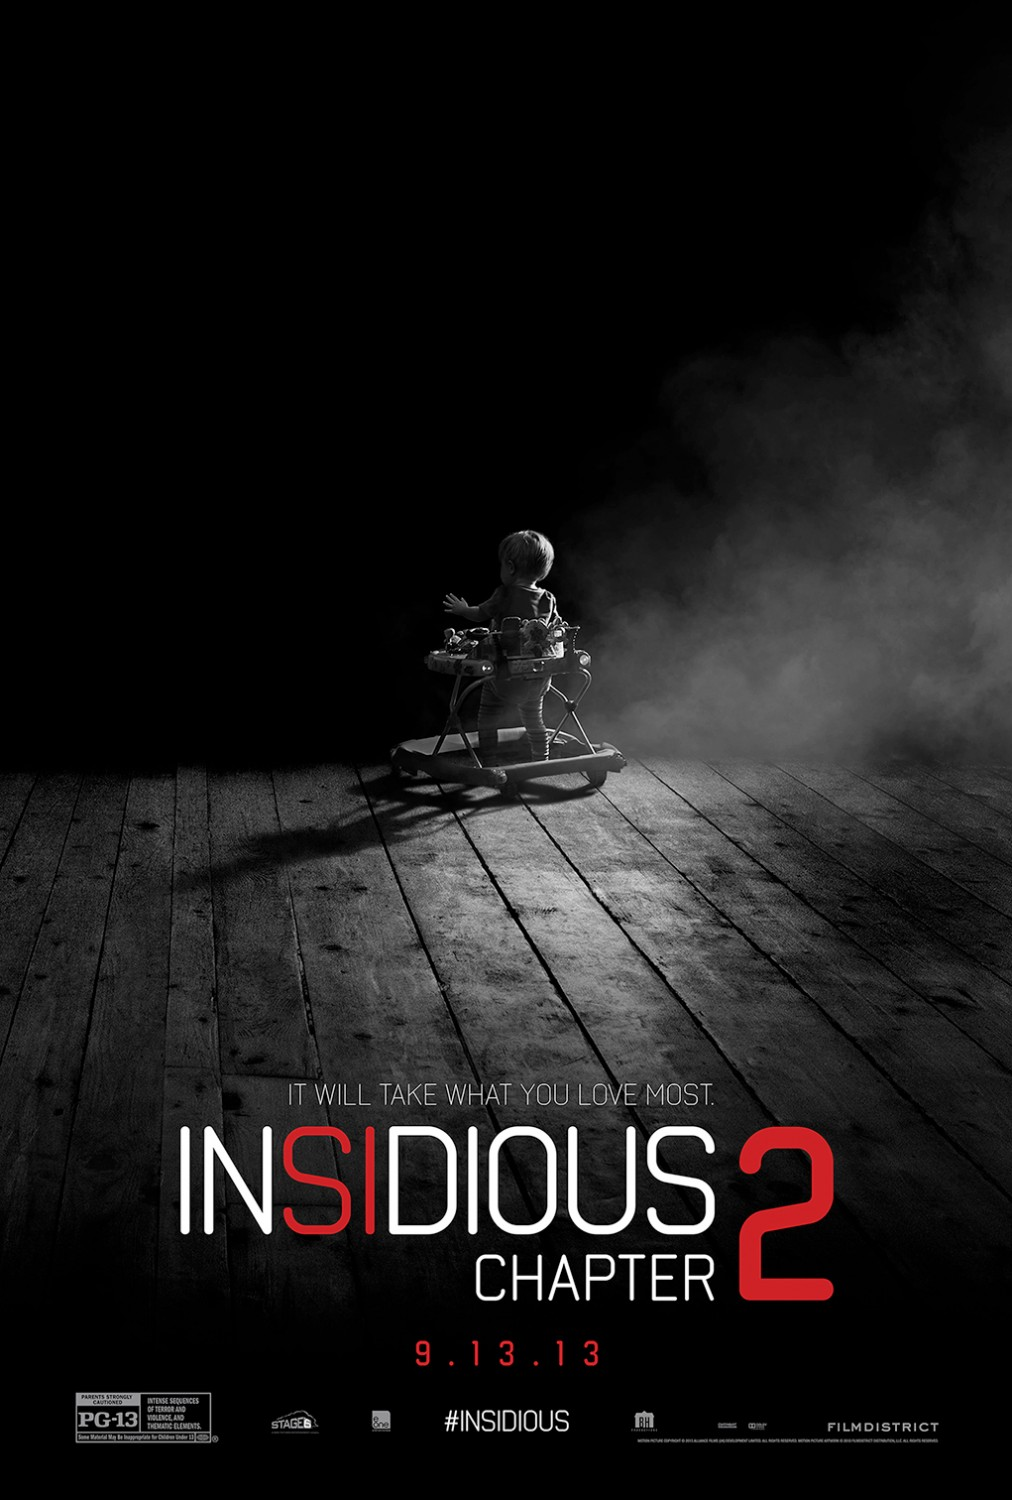 Insidious Chapter 2 poster 2